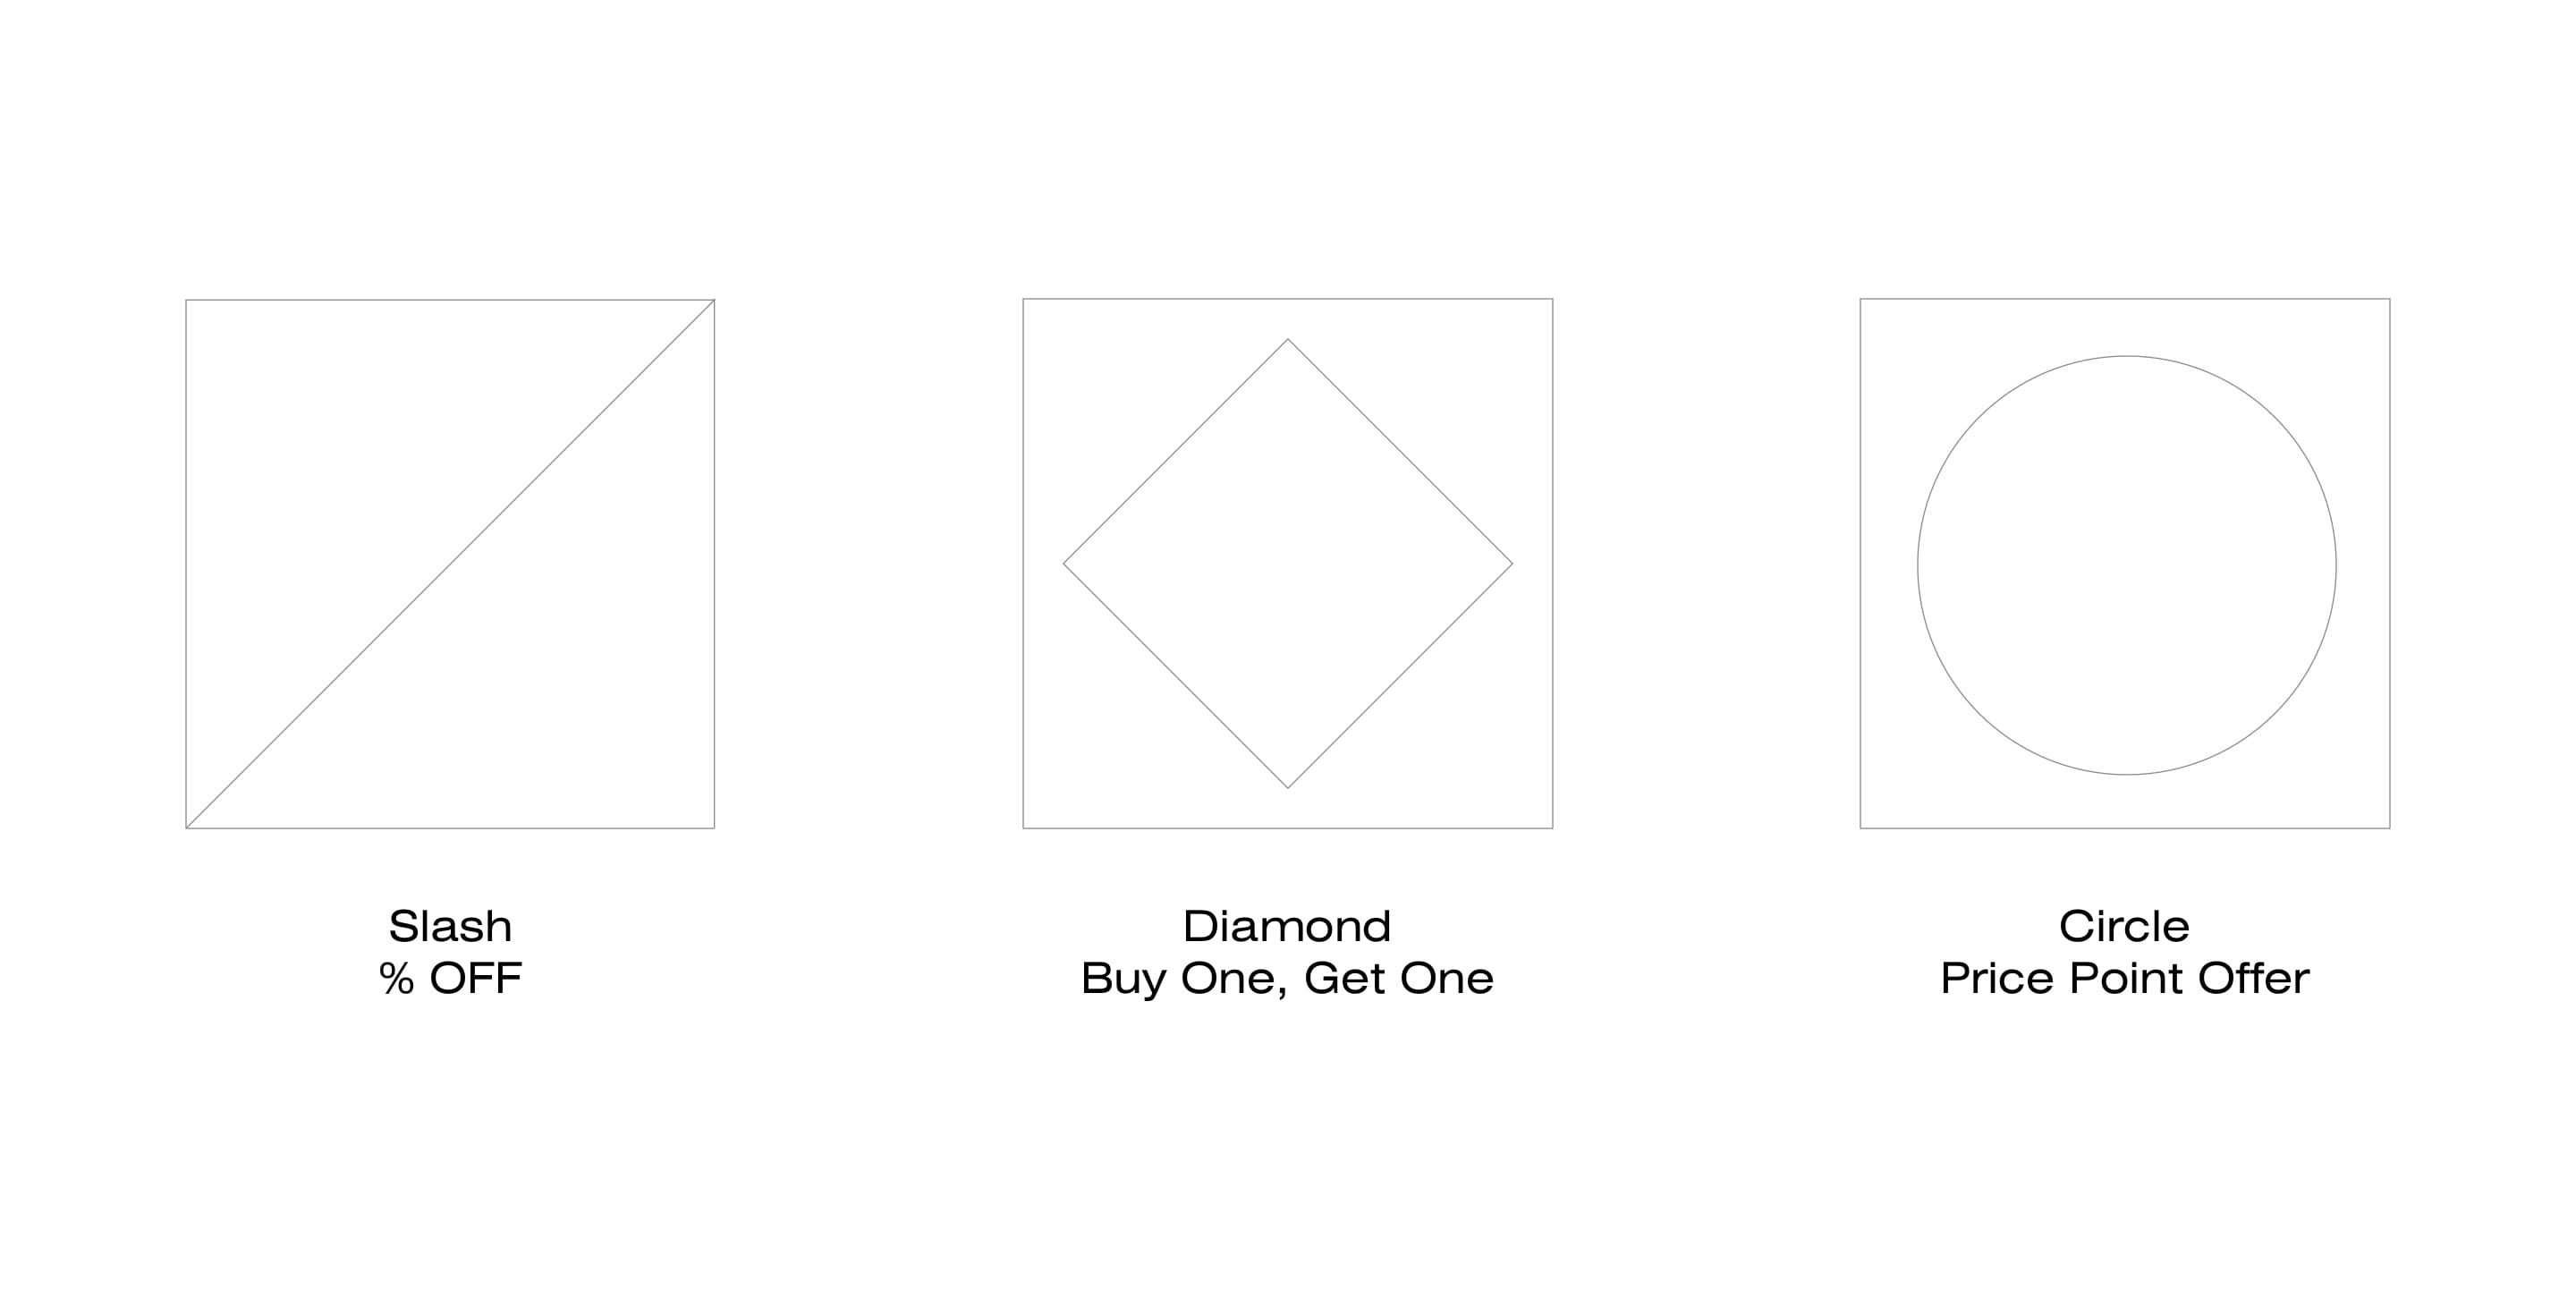 Graphic elements for different offer types.